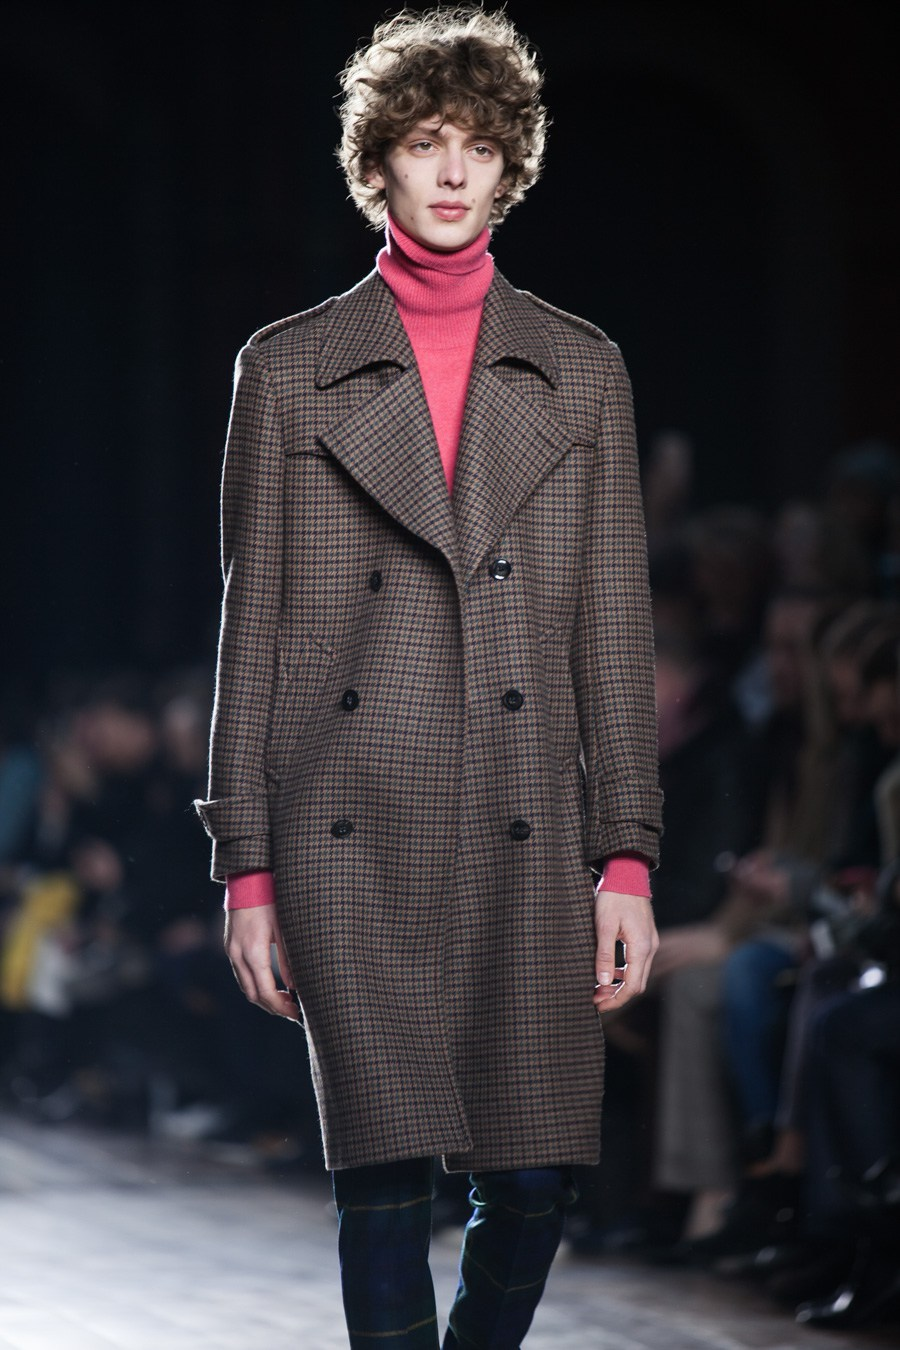 Our thoughts on the Paul Smith fall/winter 2017 show in Paris